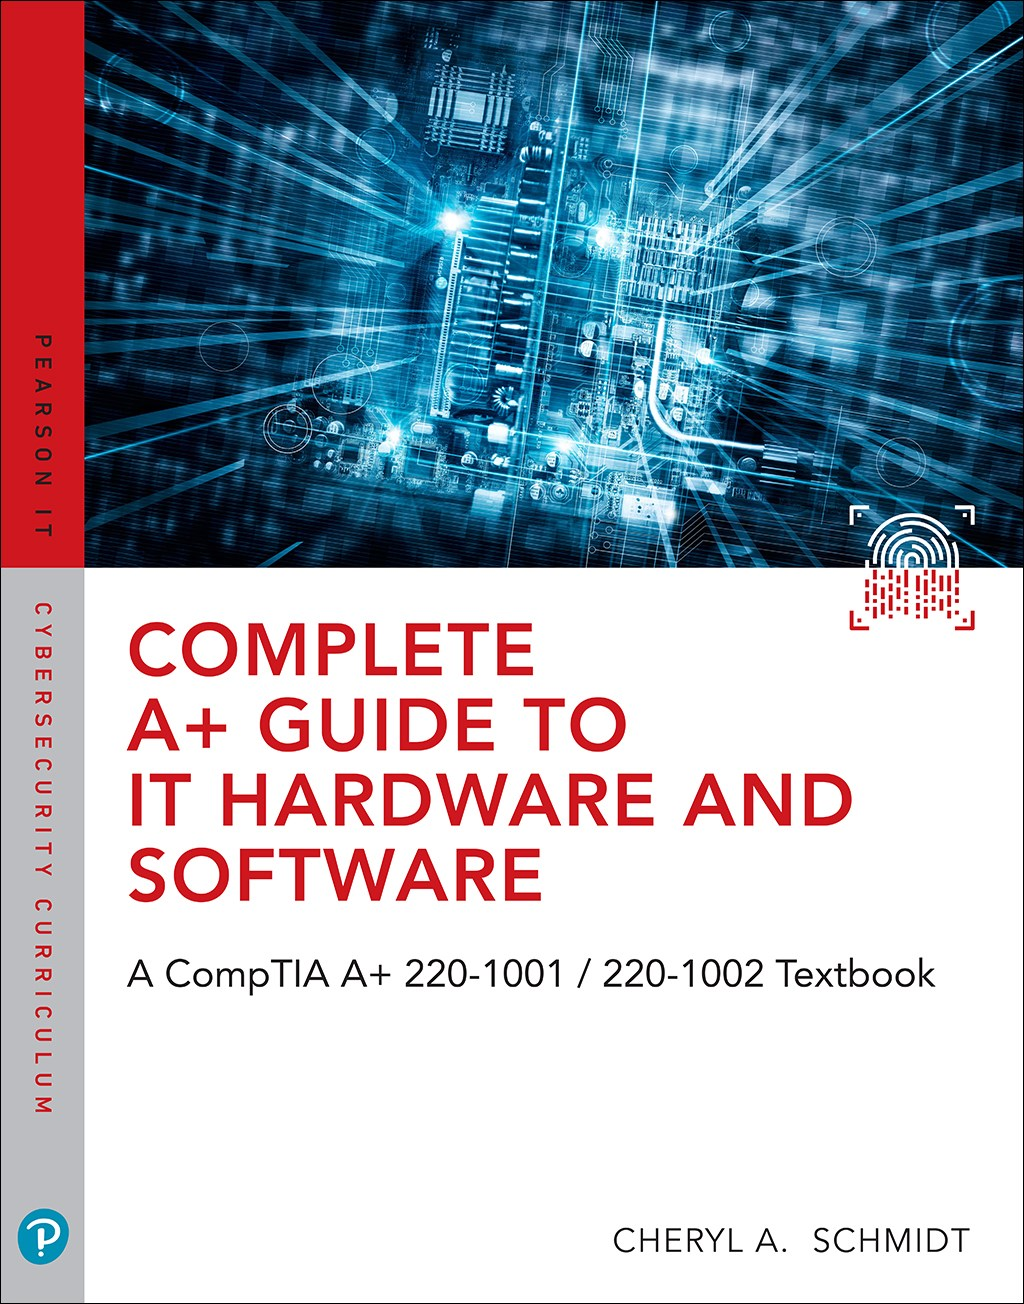 Complete A+ Guide to IT Hardware and Software: A CompTIA A+ 220-1001 / 220-1002 Textbook, 8th Edition